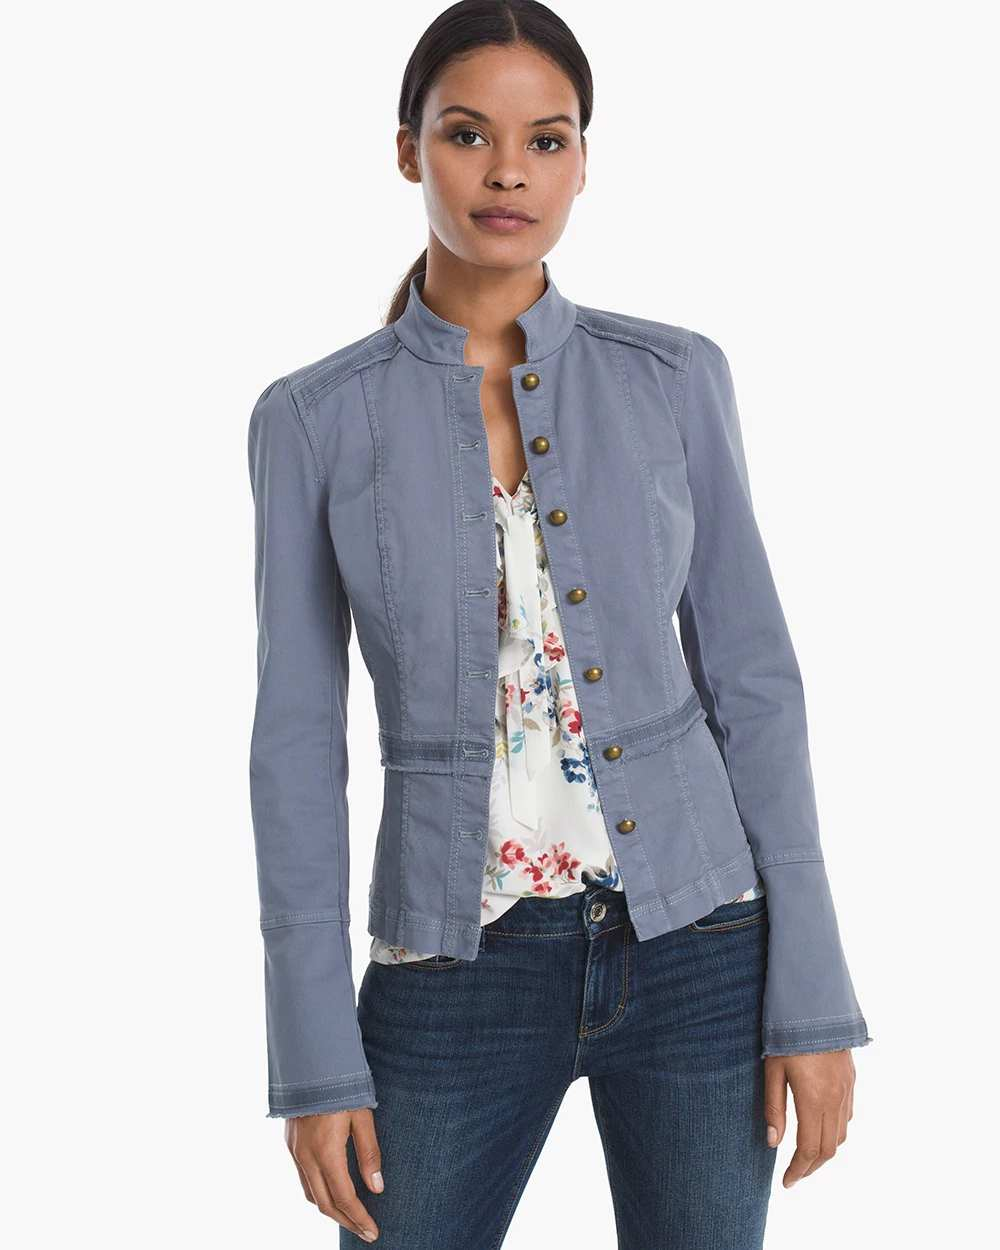 BUTTON-FRONT JACKET | Hermosaz